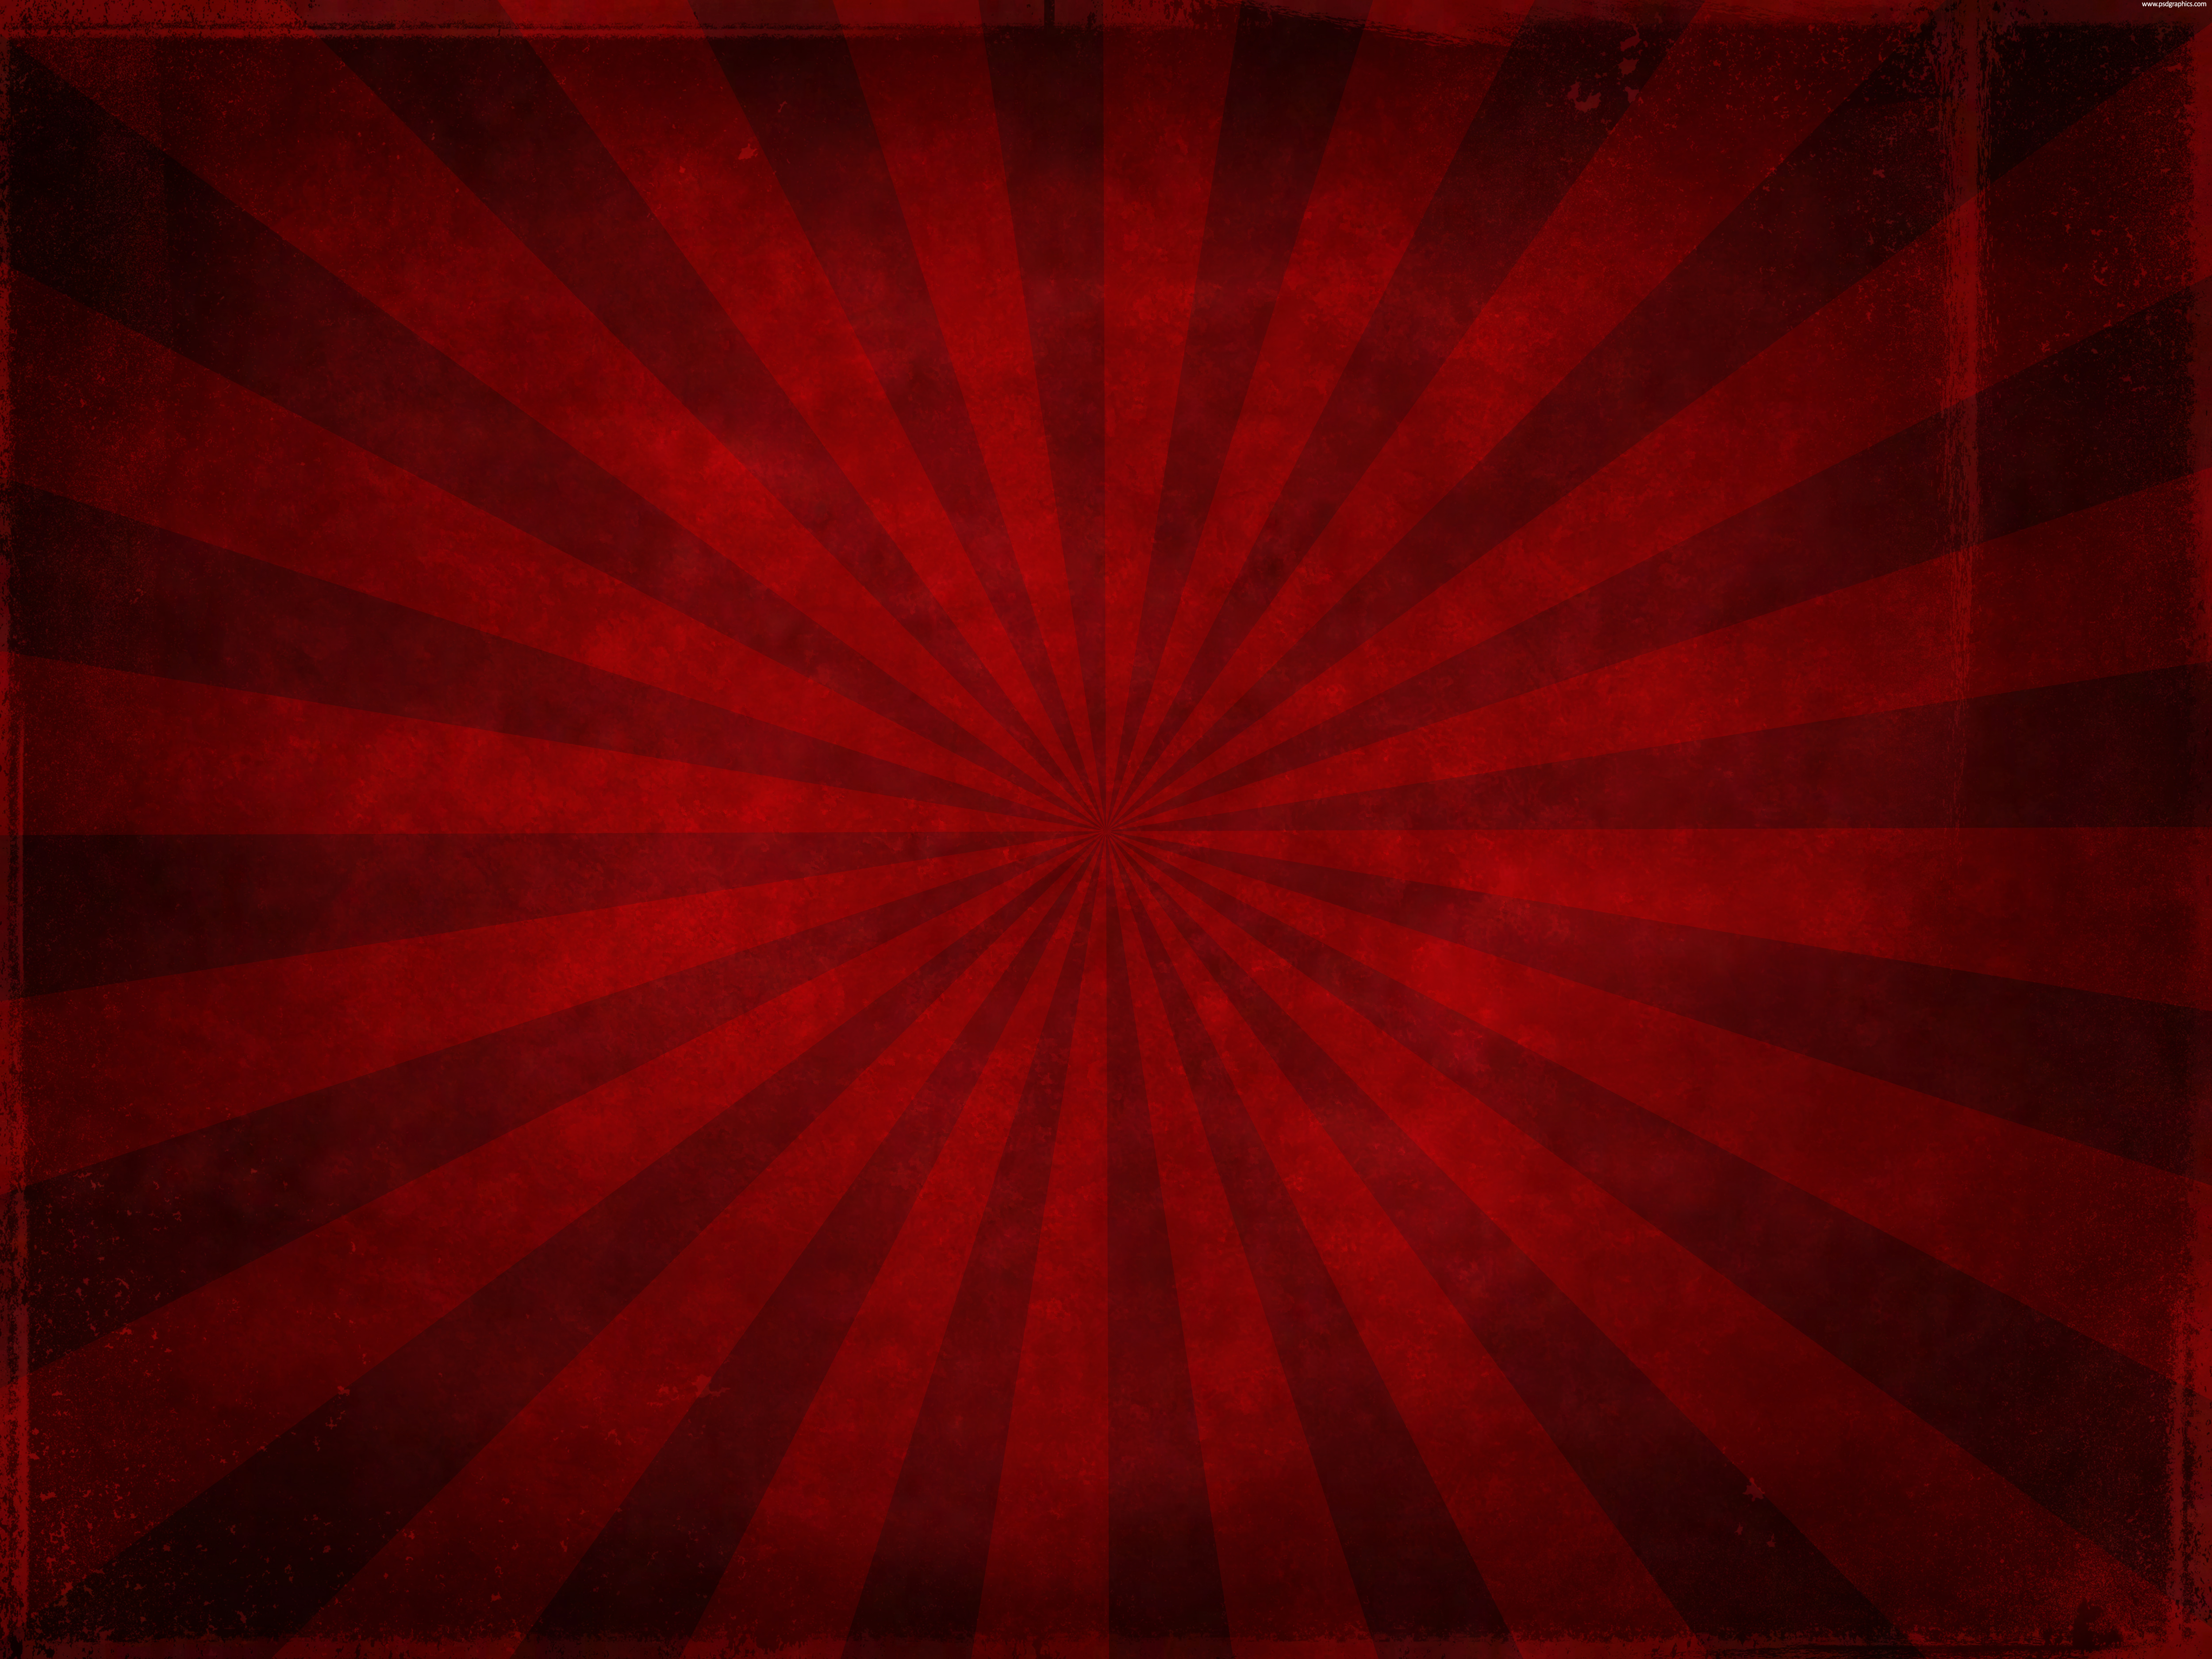 Red Grunge sunray Background Textures Pinterest Grunge and Red 5000x3750